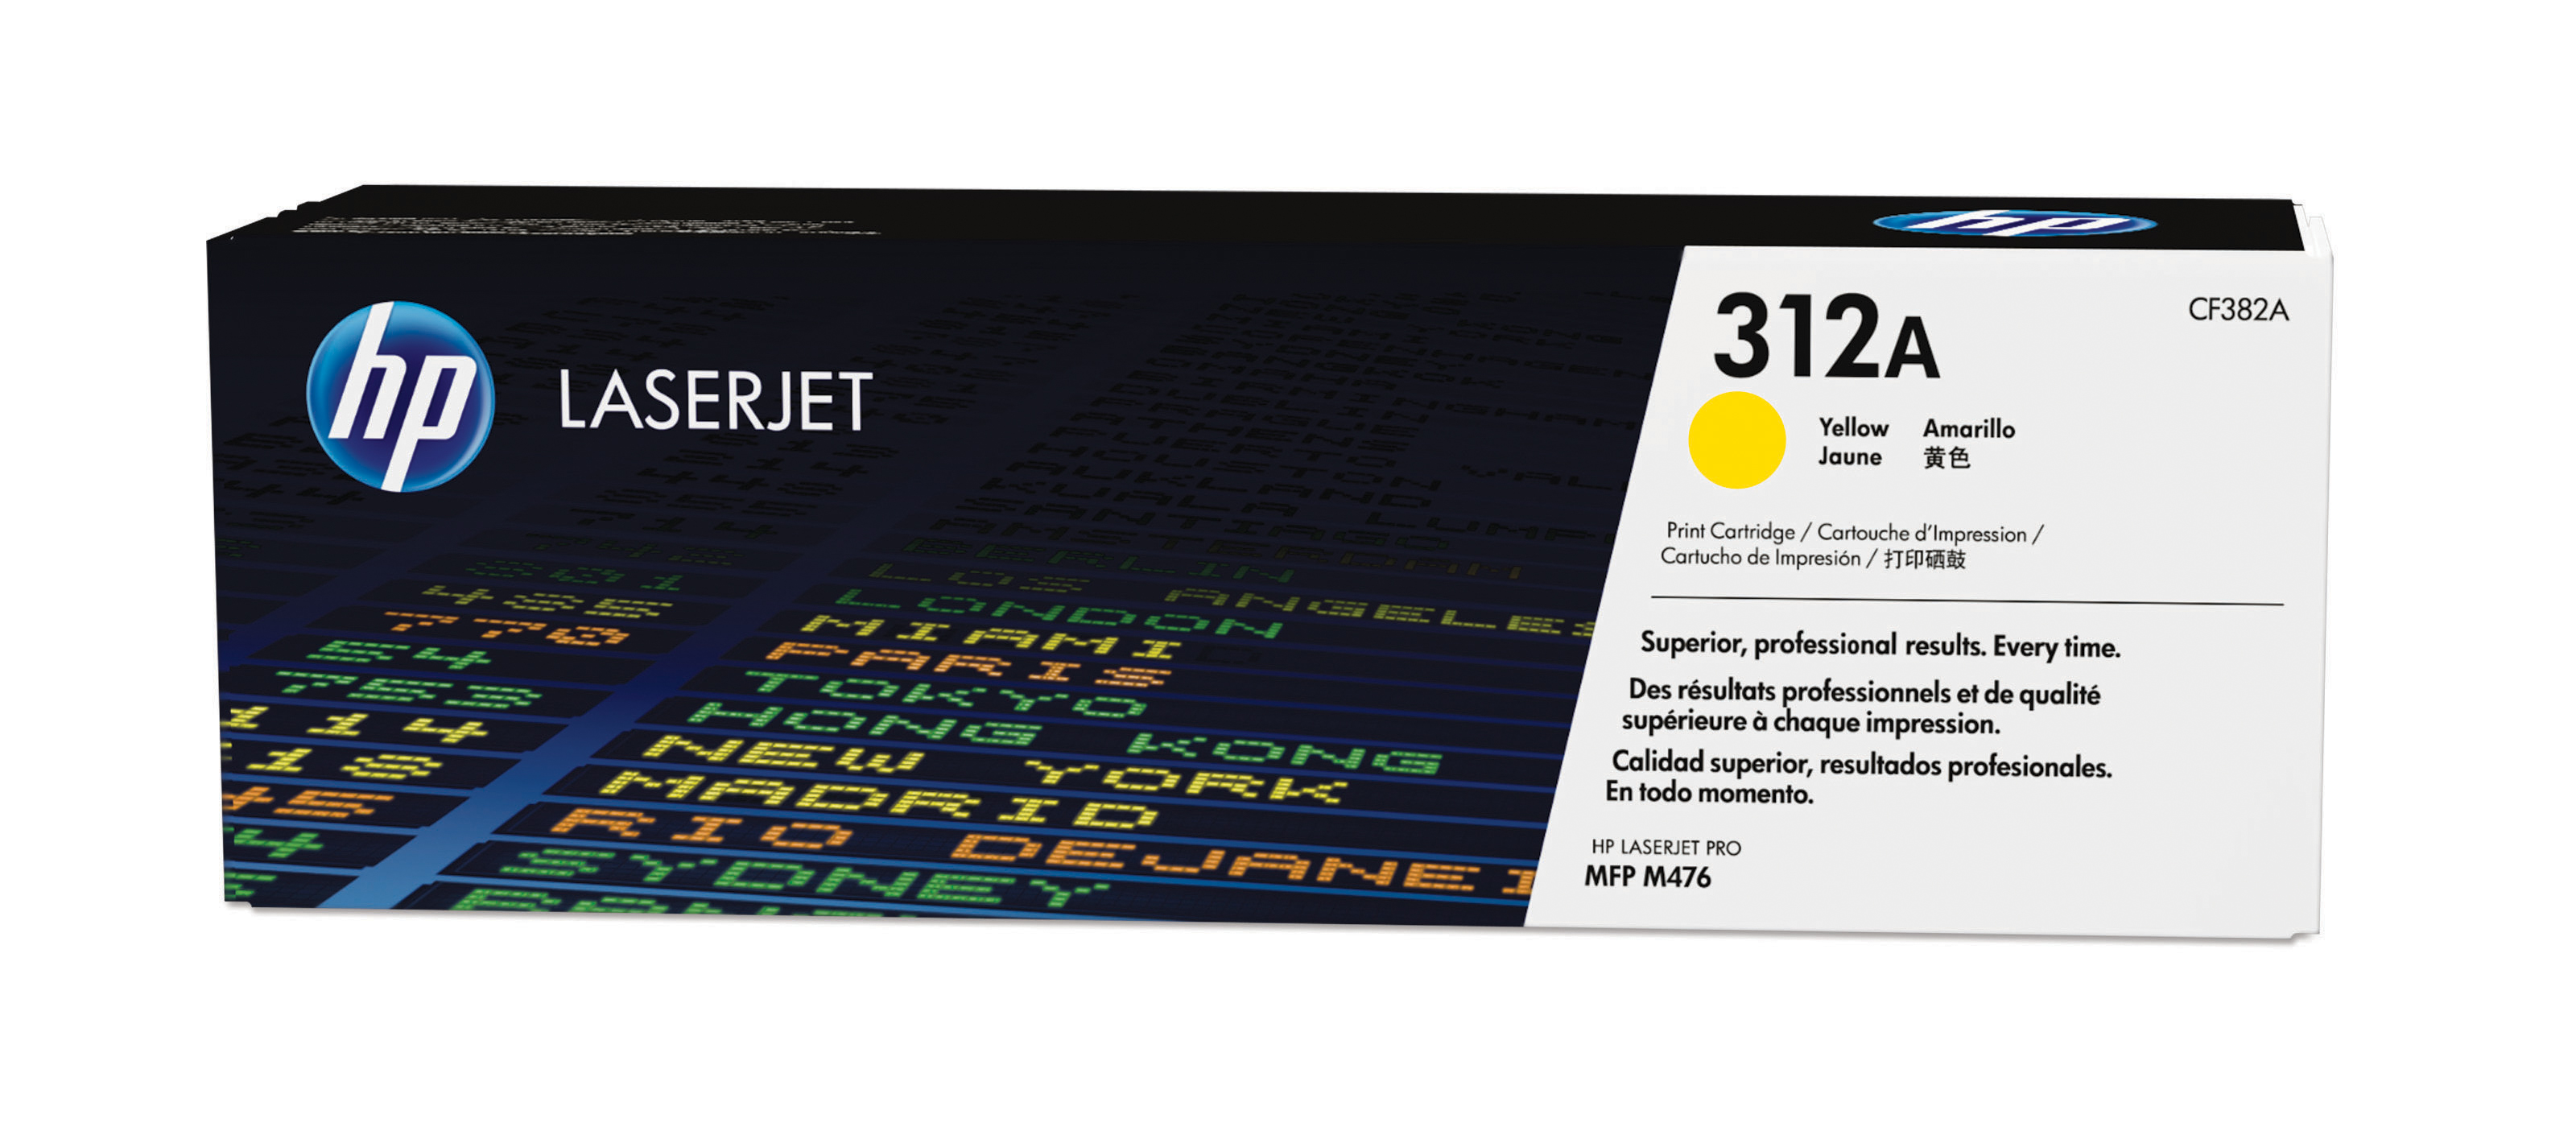 HP TONER CARTRIDGE LASERJET 312A GROC M476